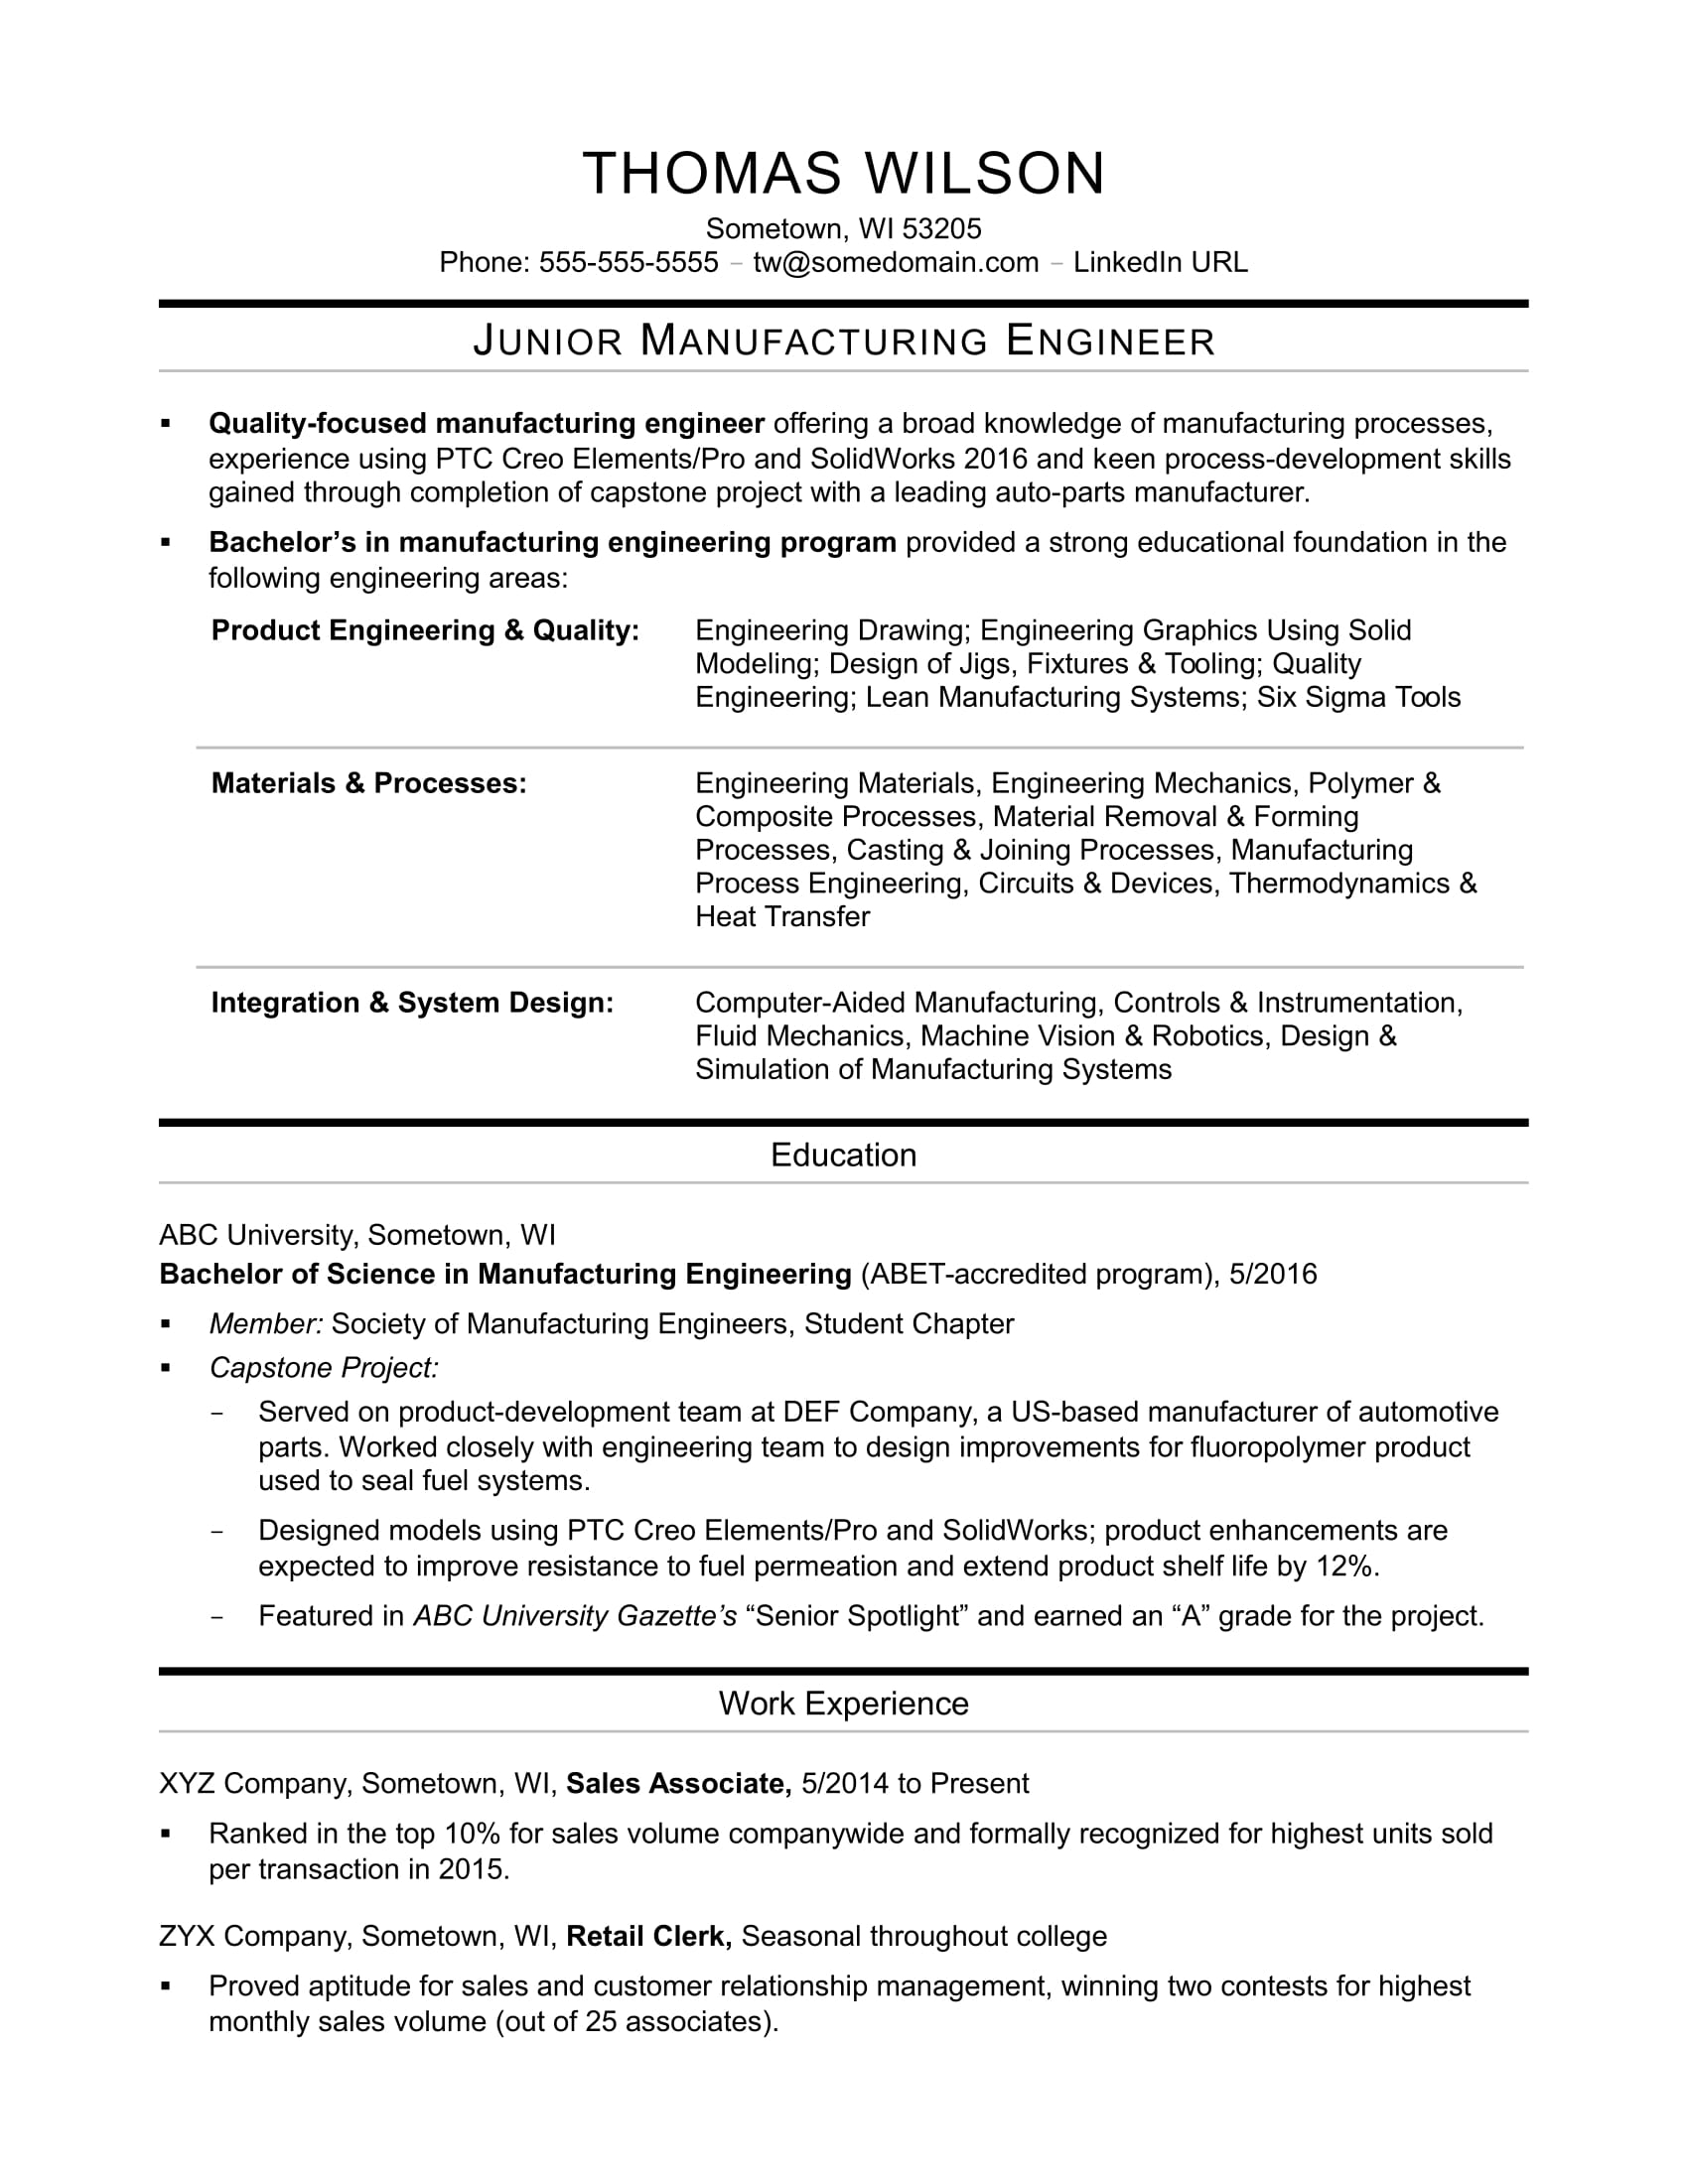 example of quality engineer resume materials sample for an entry level manufacturing Resume Materials Engineer Resume